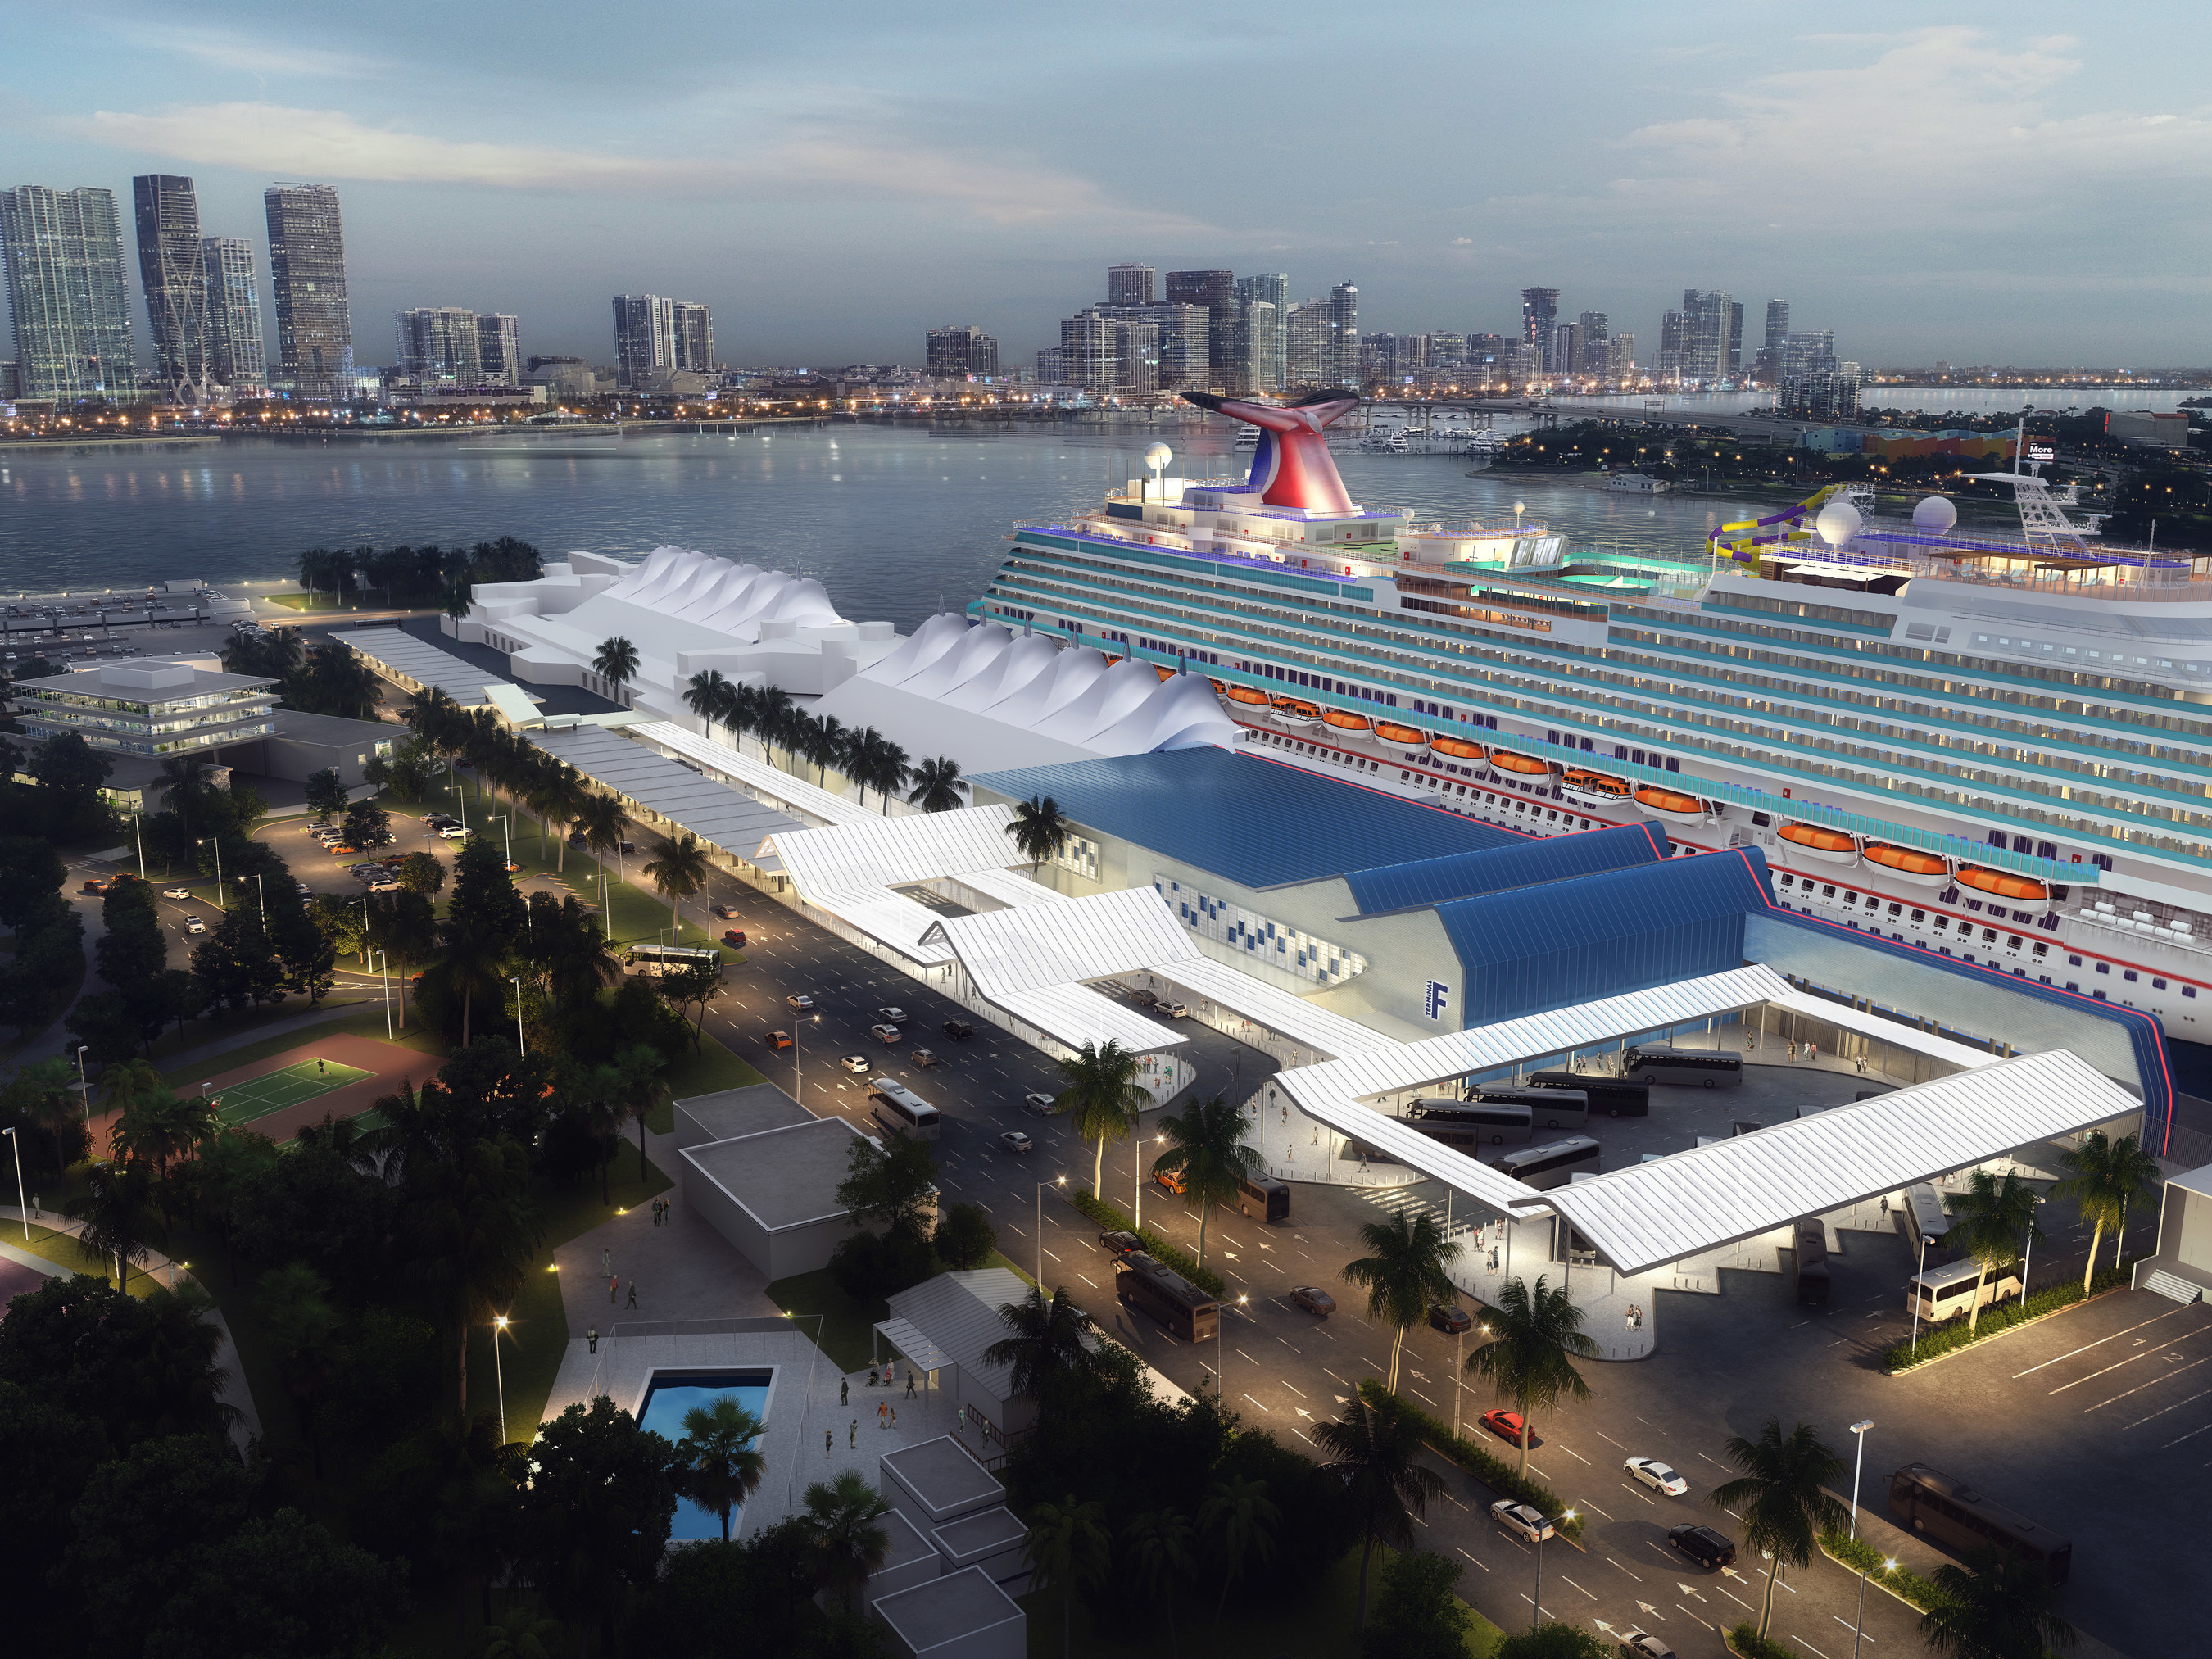 Carnival Receives Approval For Major Expansion Of Terminal F At PortMiami To Accommodate Its Excel Class Ship For Arrival In 2022